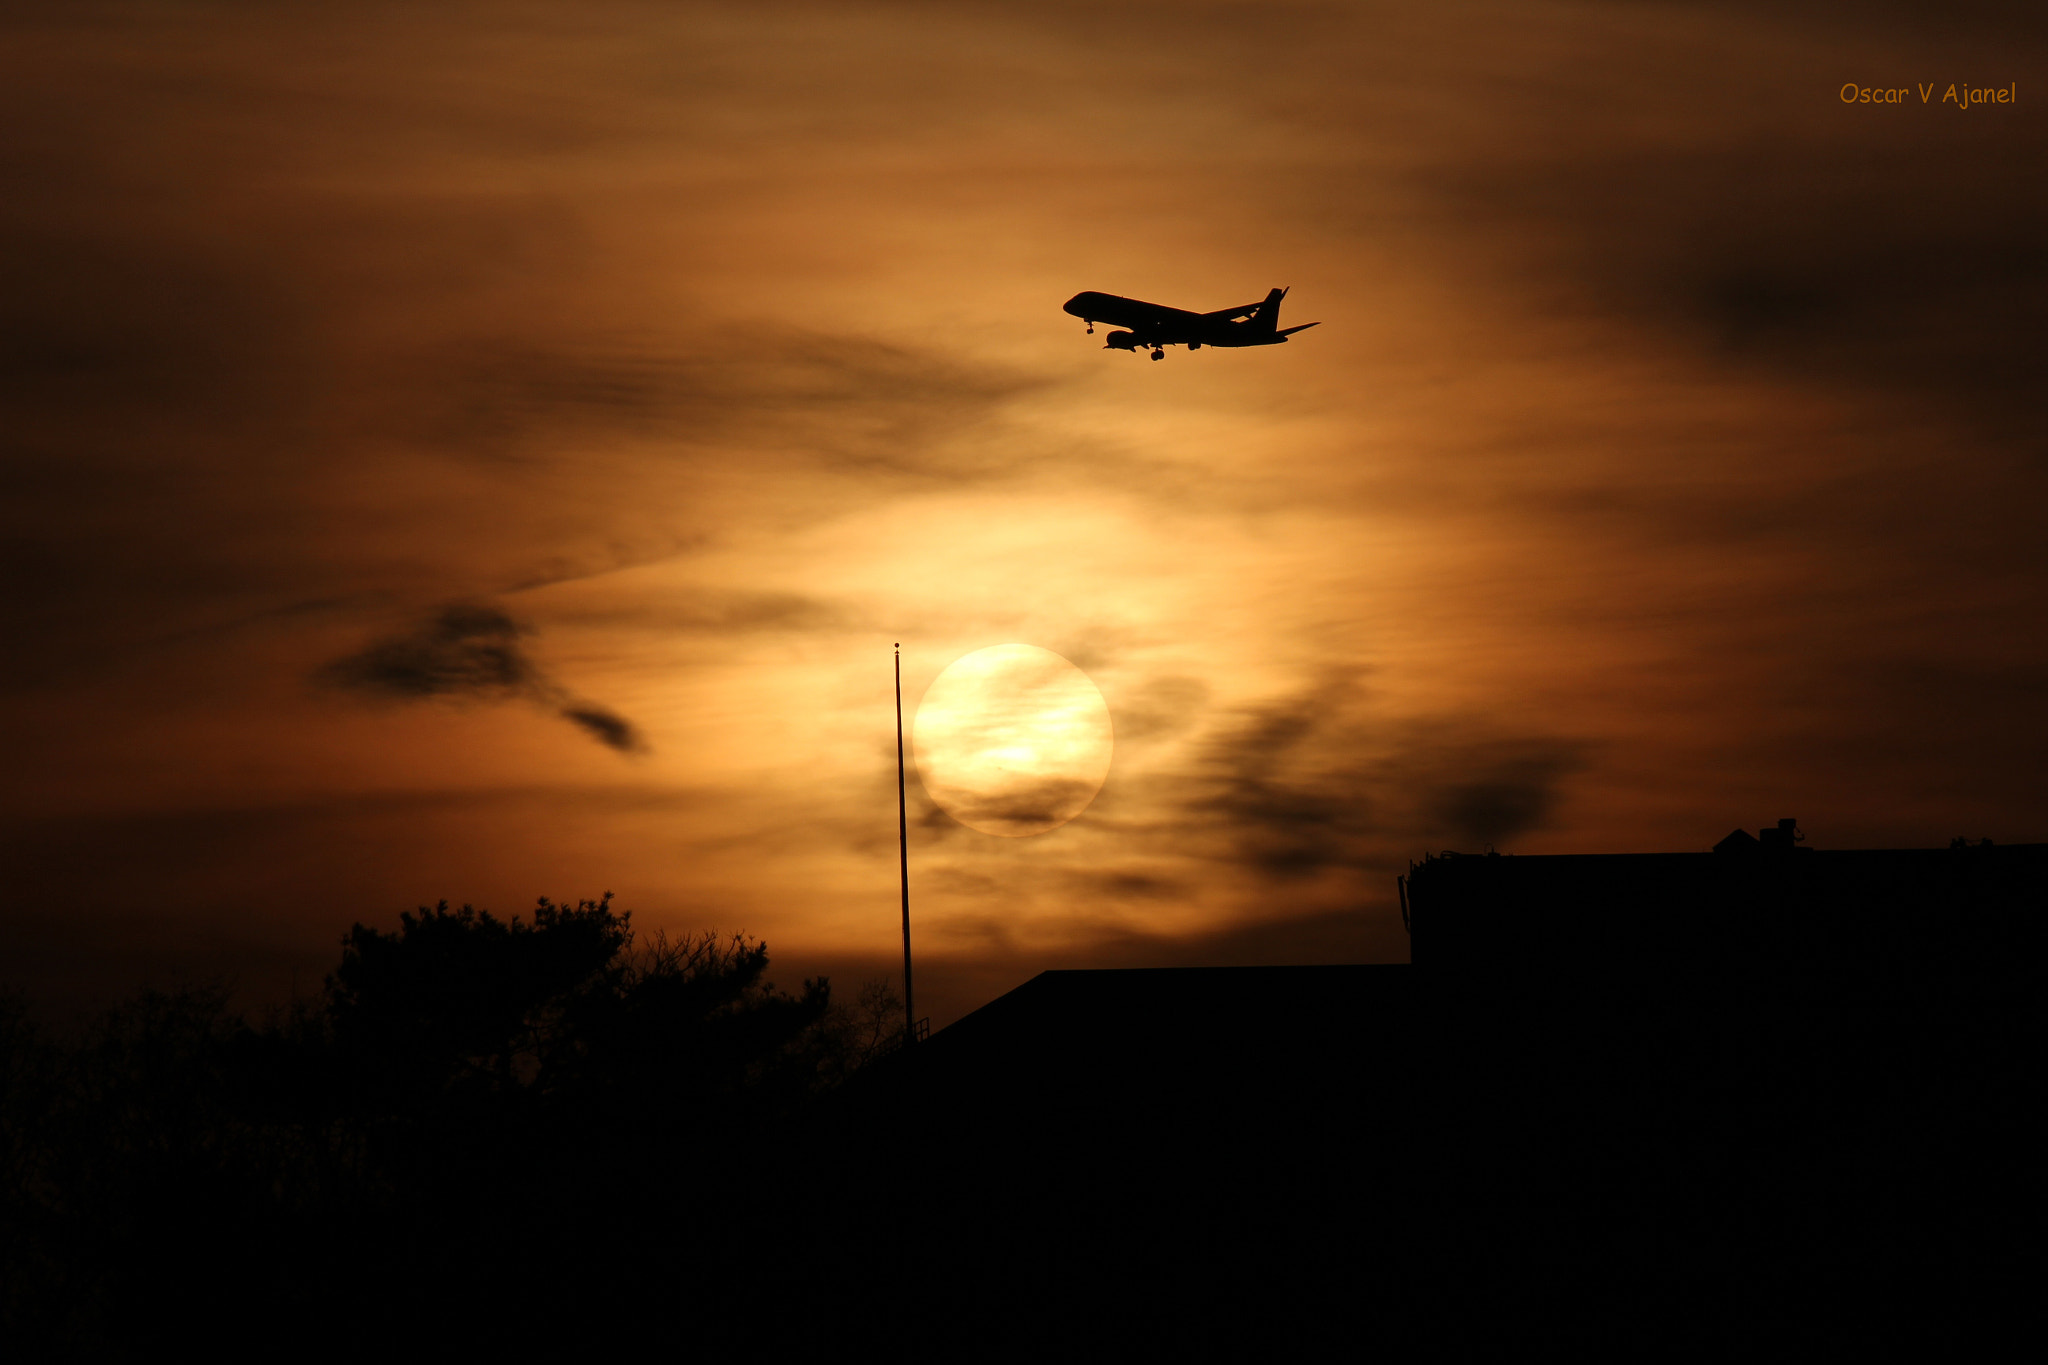 Photograph Airplane sunset  by Oscar V Ajanel on 500px